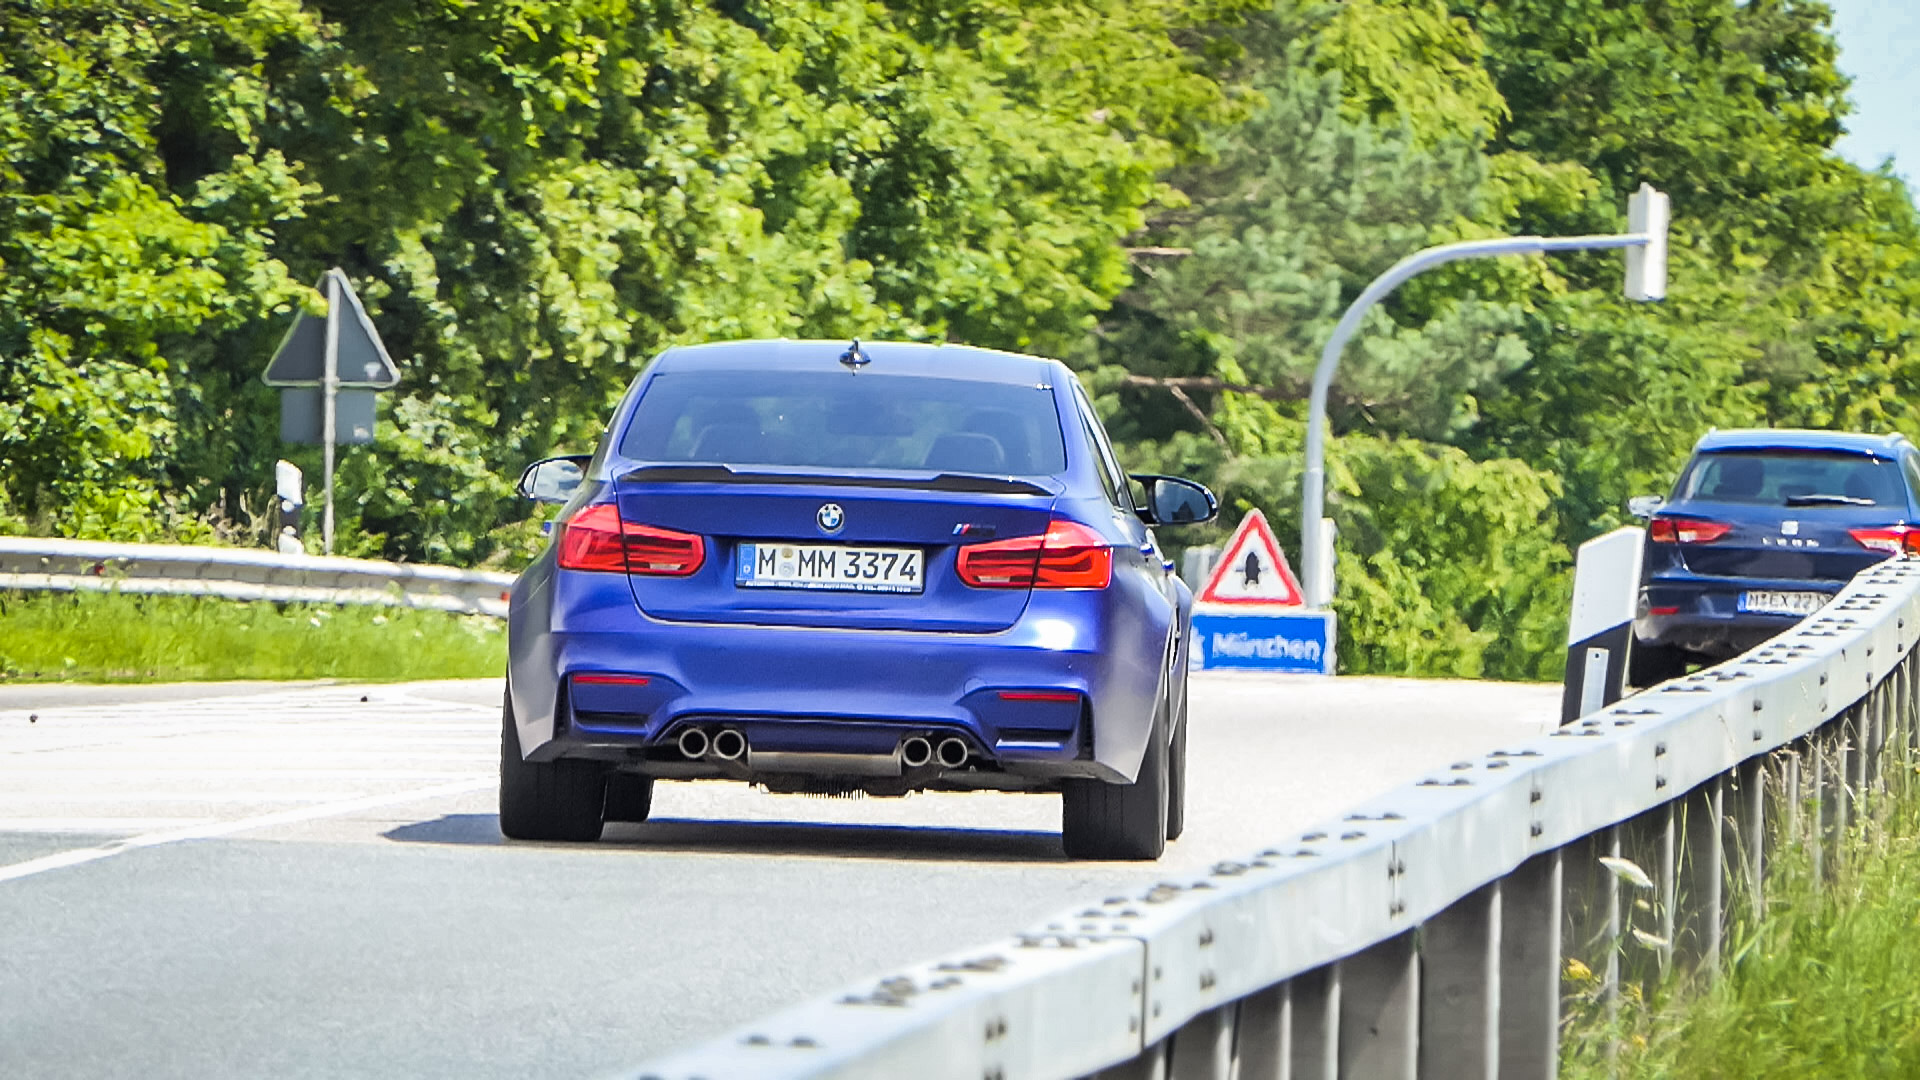 BMW M3 CS - M-MM-3374